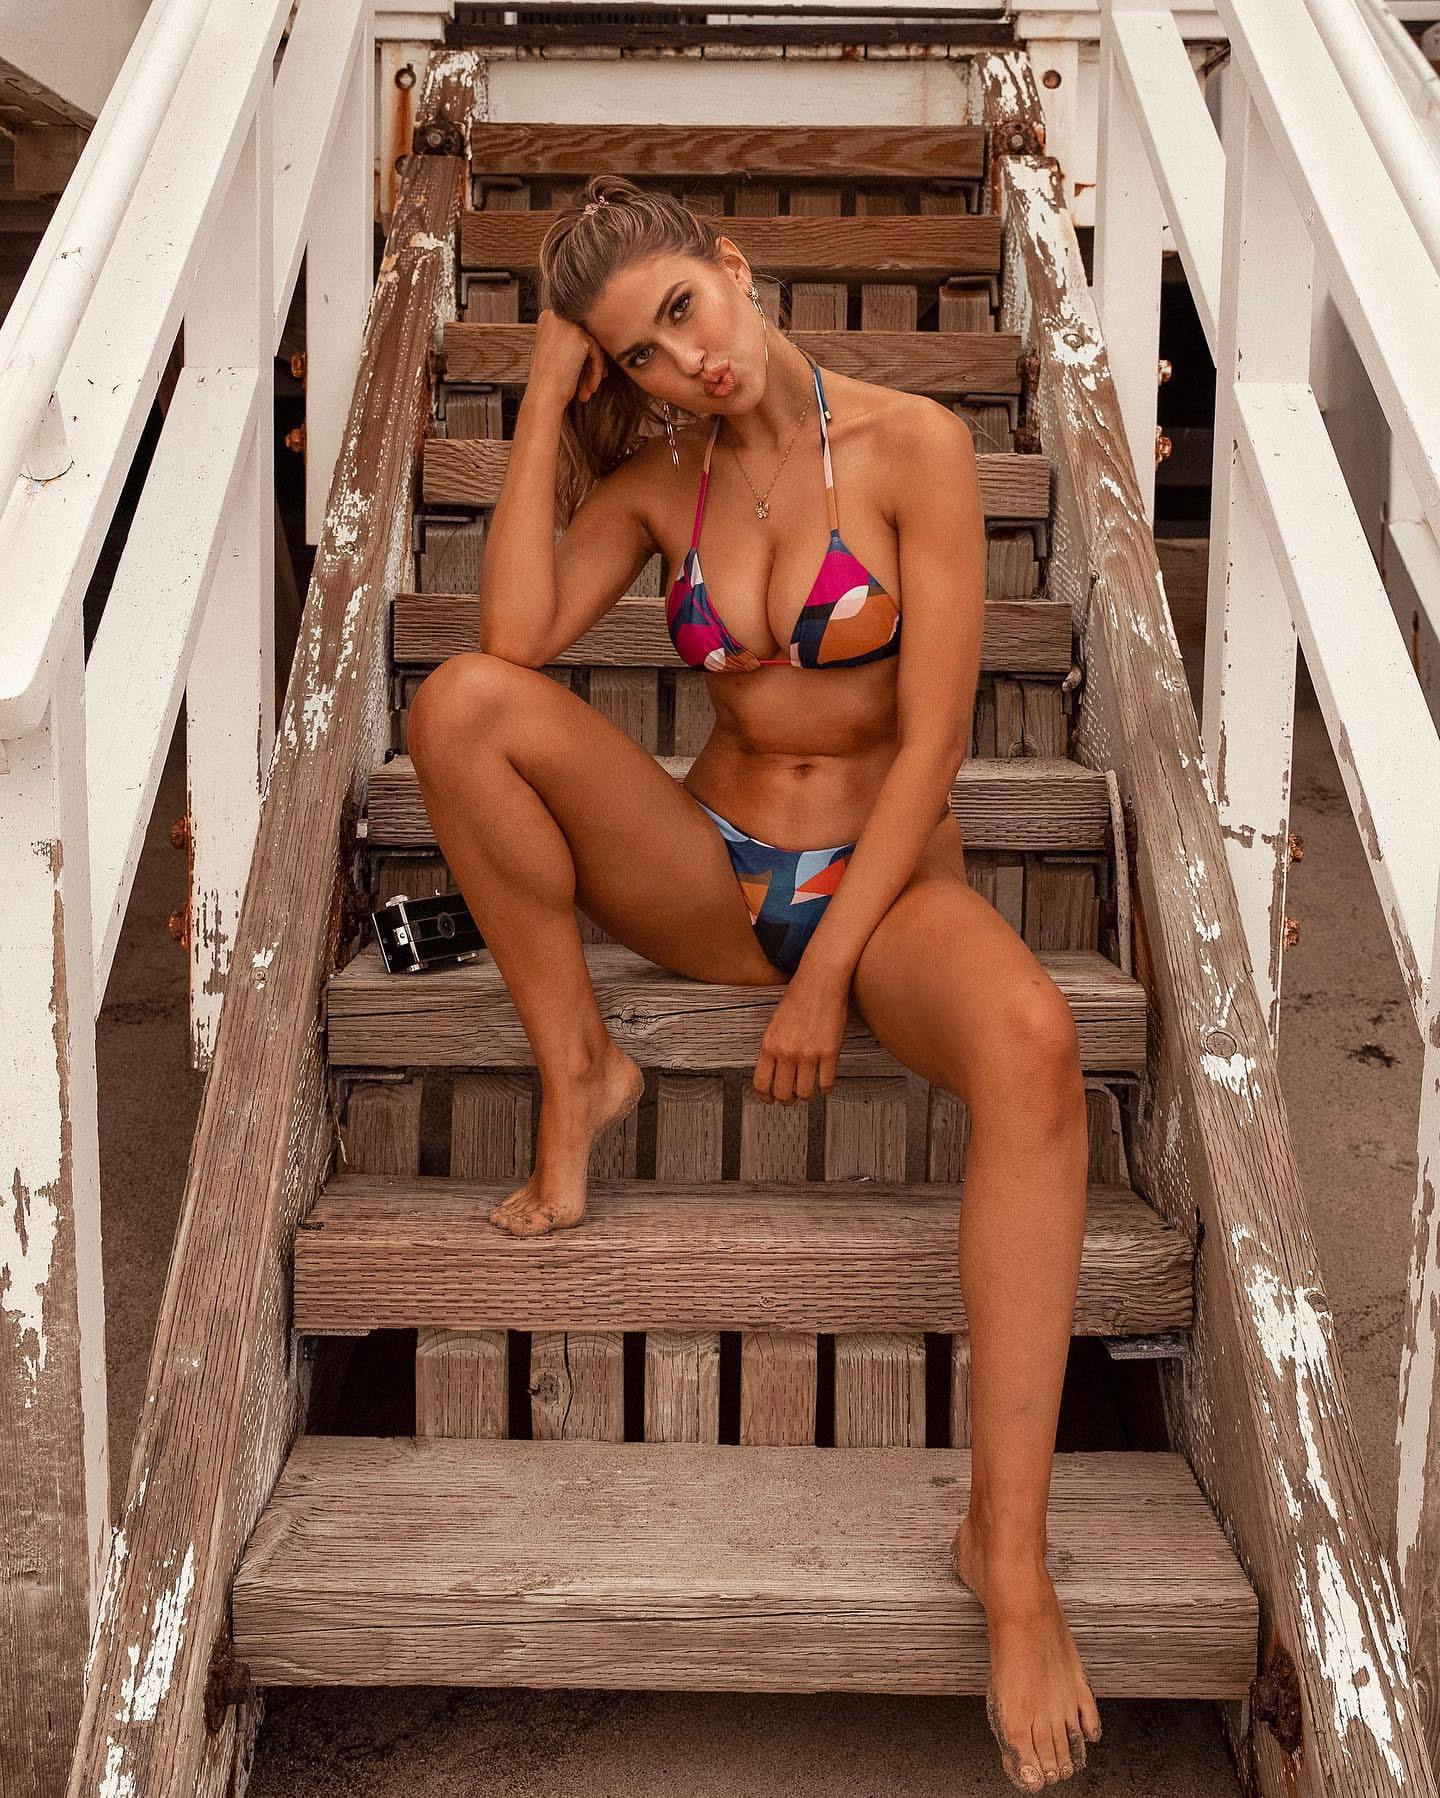 Kara Del Toro Perfect Boobs In Bikini